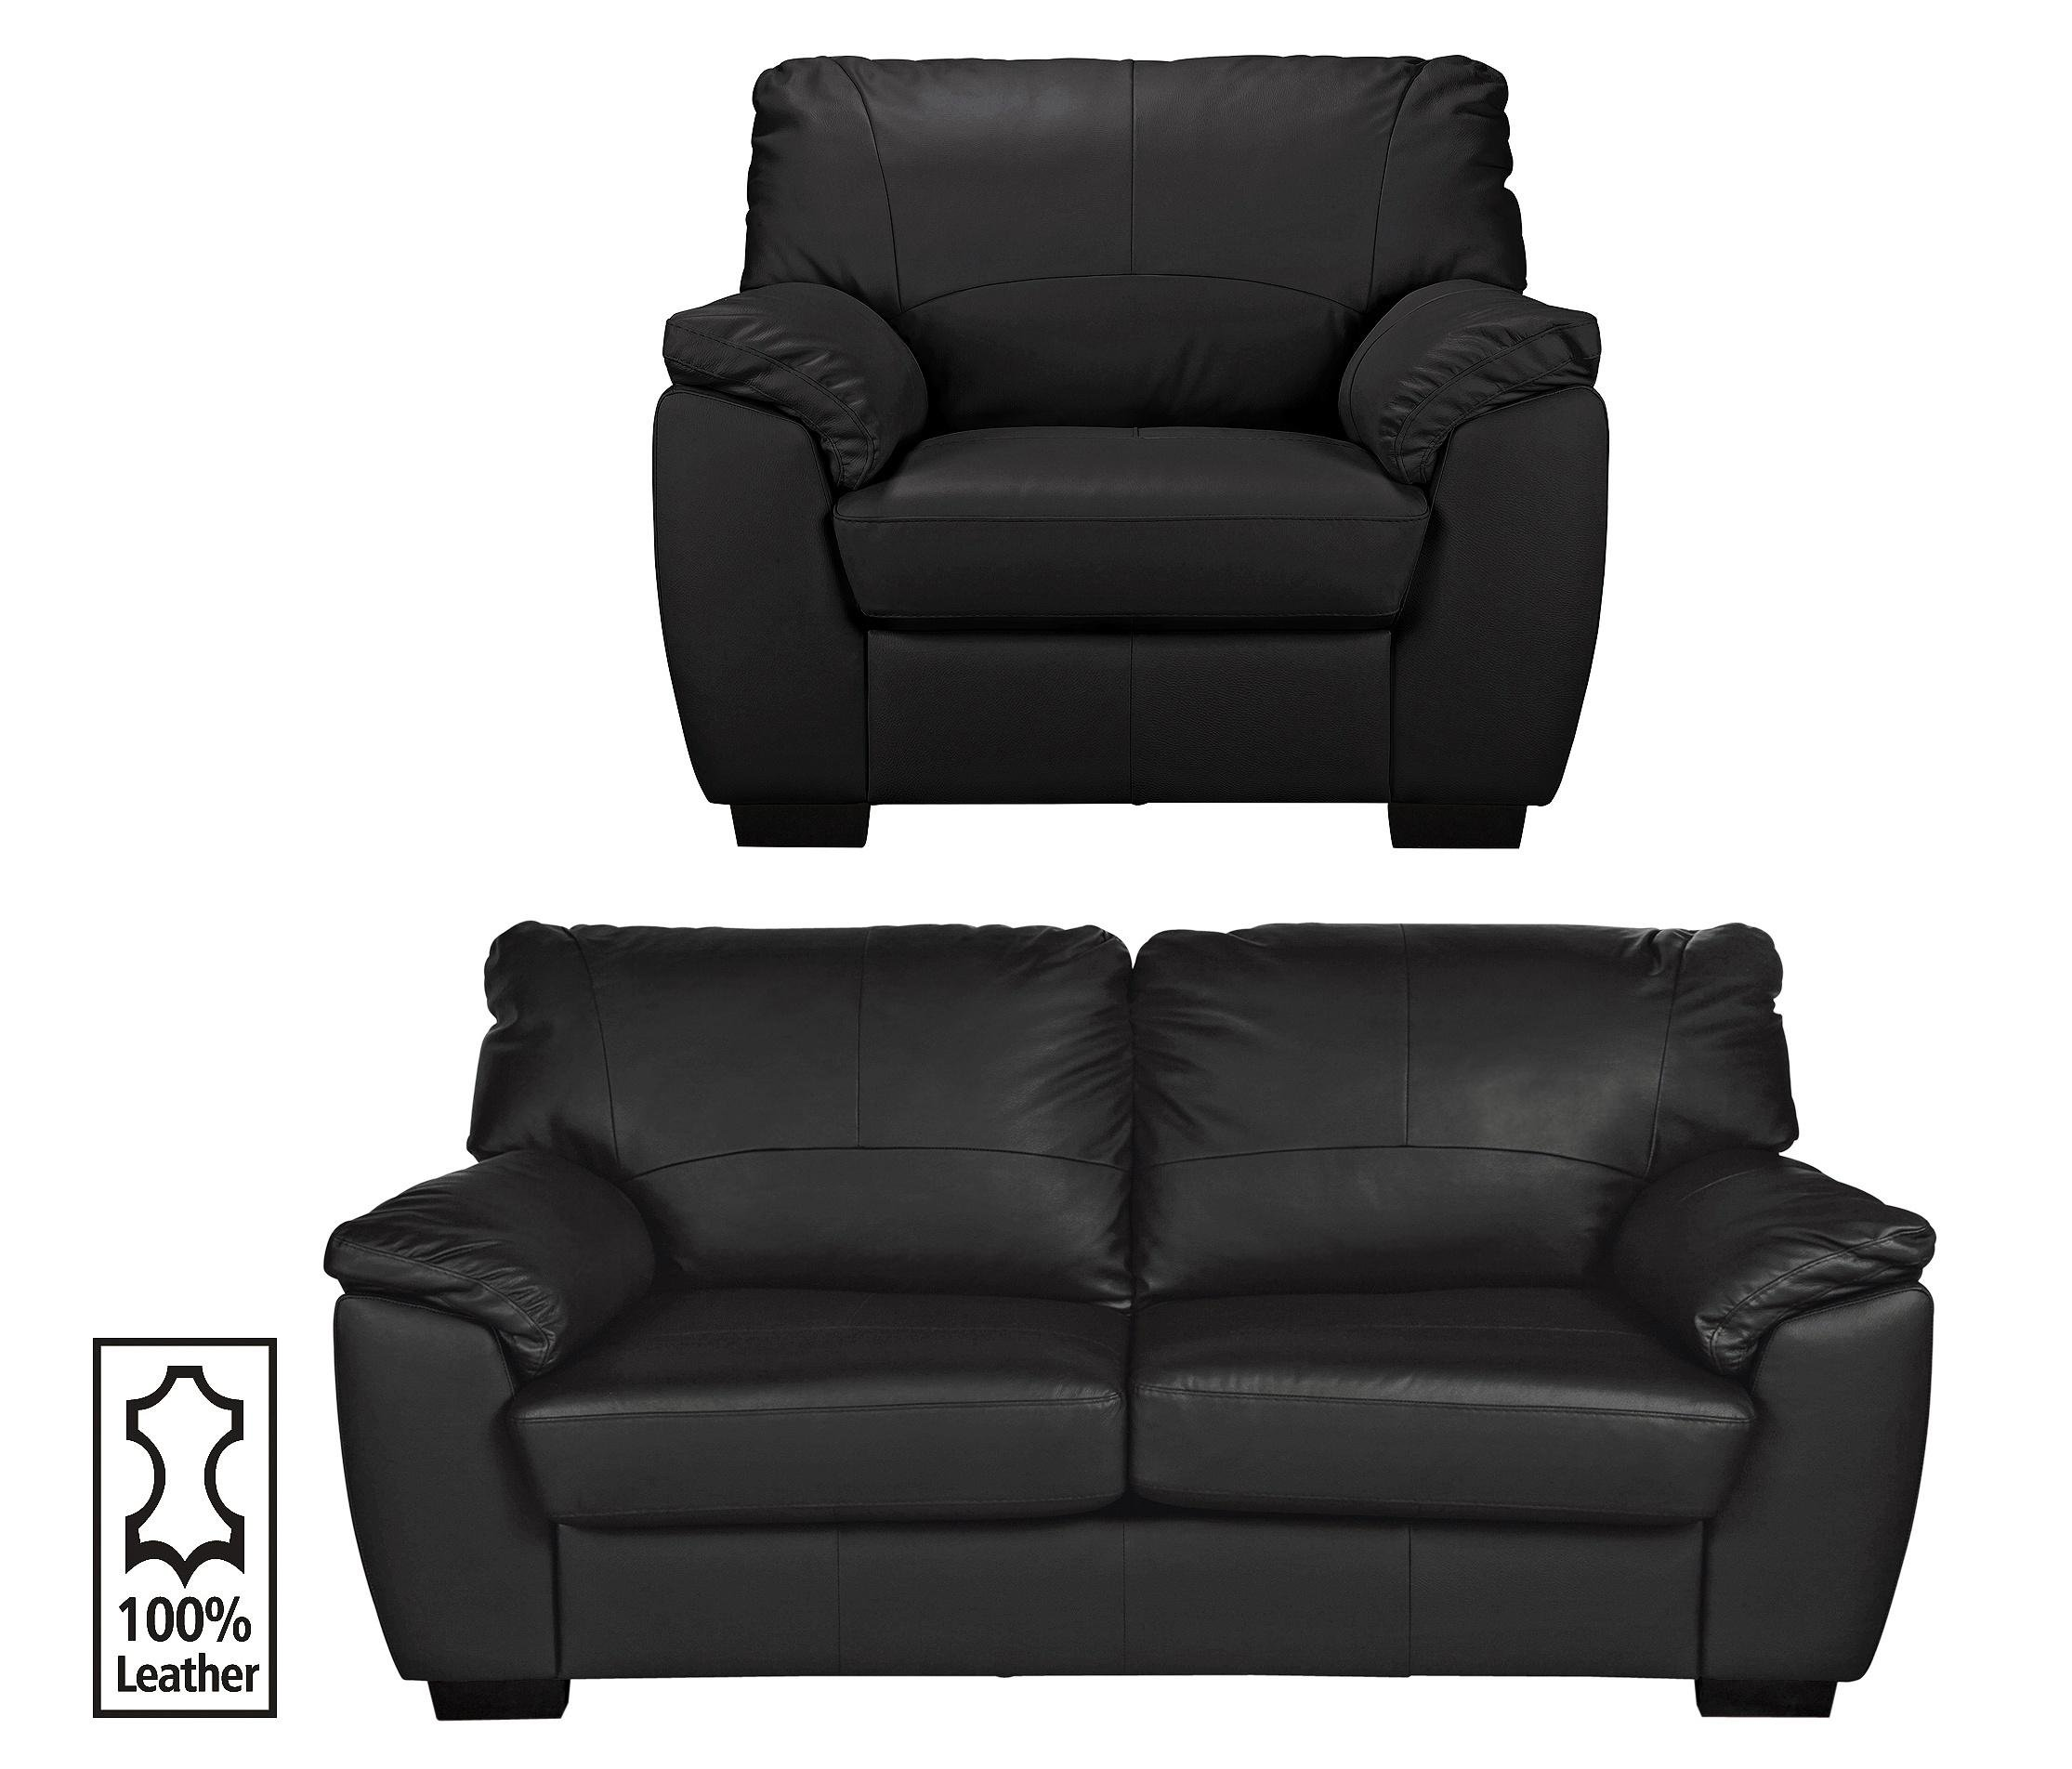 Collection Milano Leather Large Sofa And Chair Black